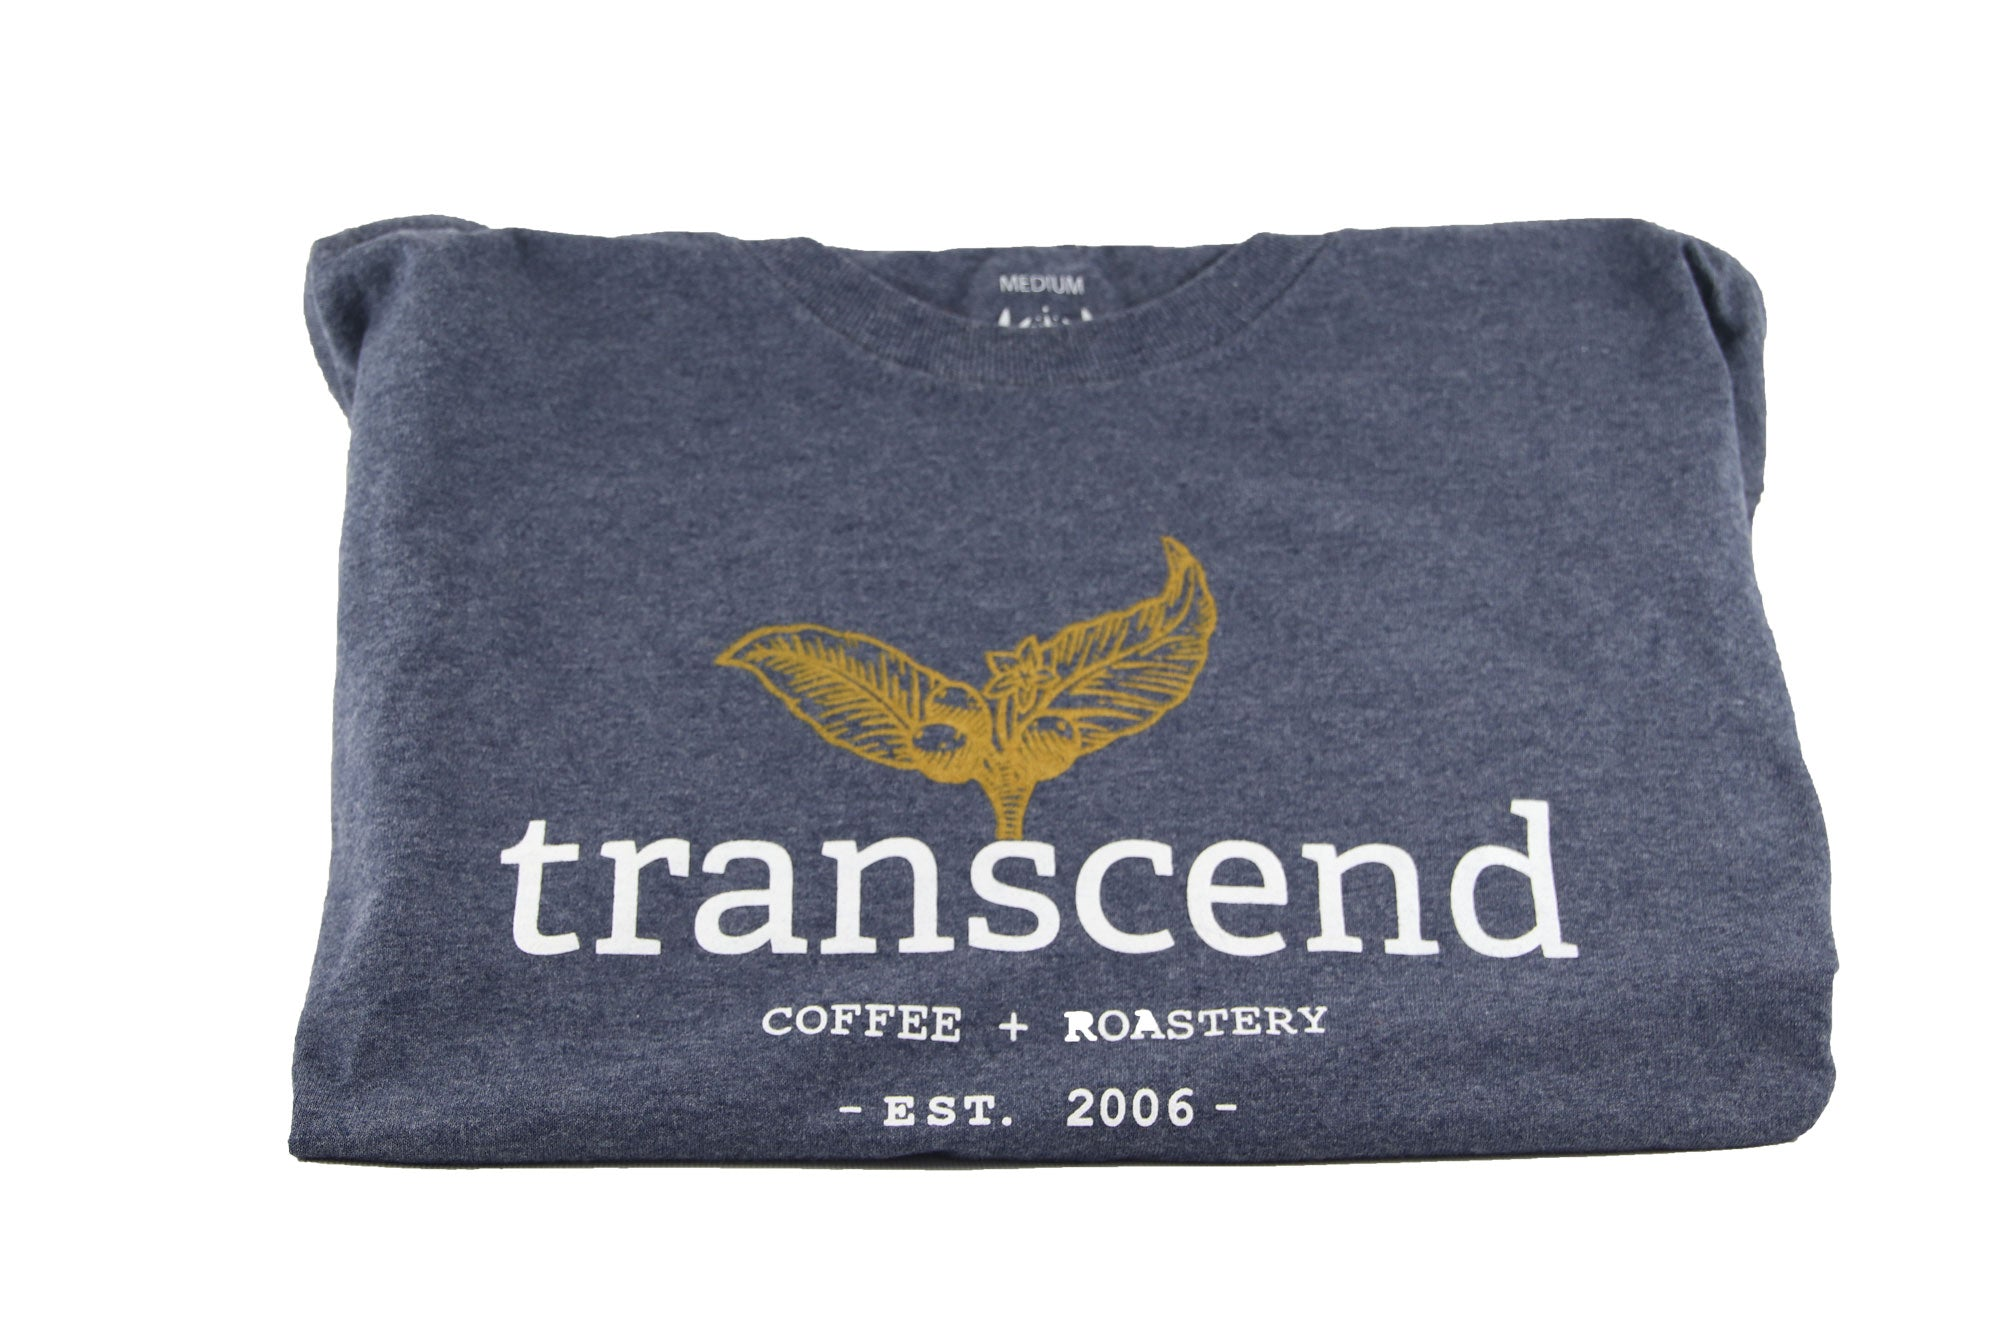 Transcend short sleeve t-shirt in grey